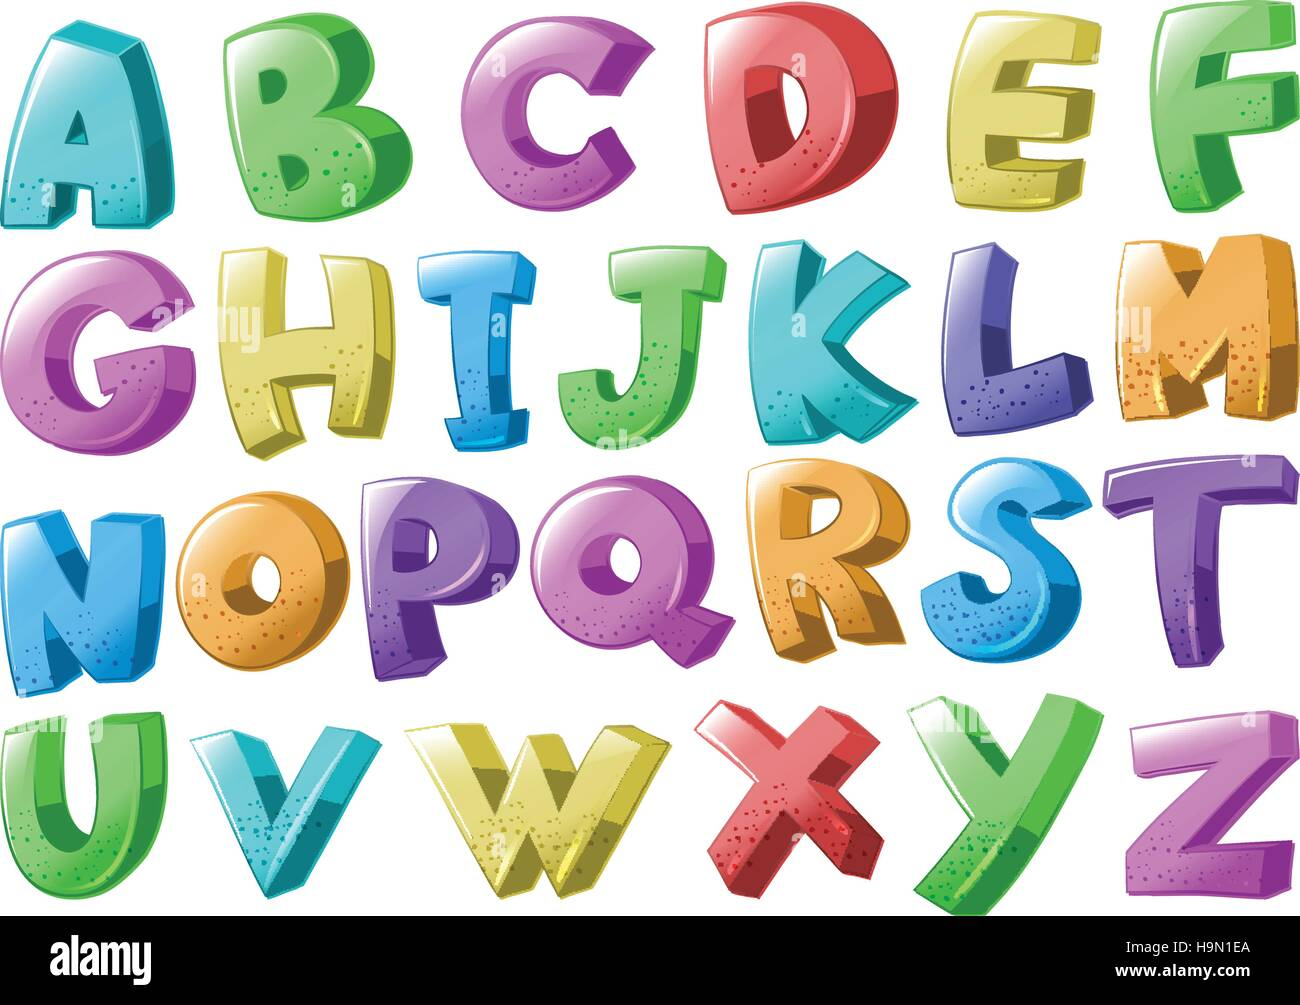 Font design with english alphabets illustration - Stock Vector